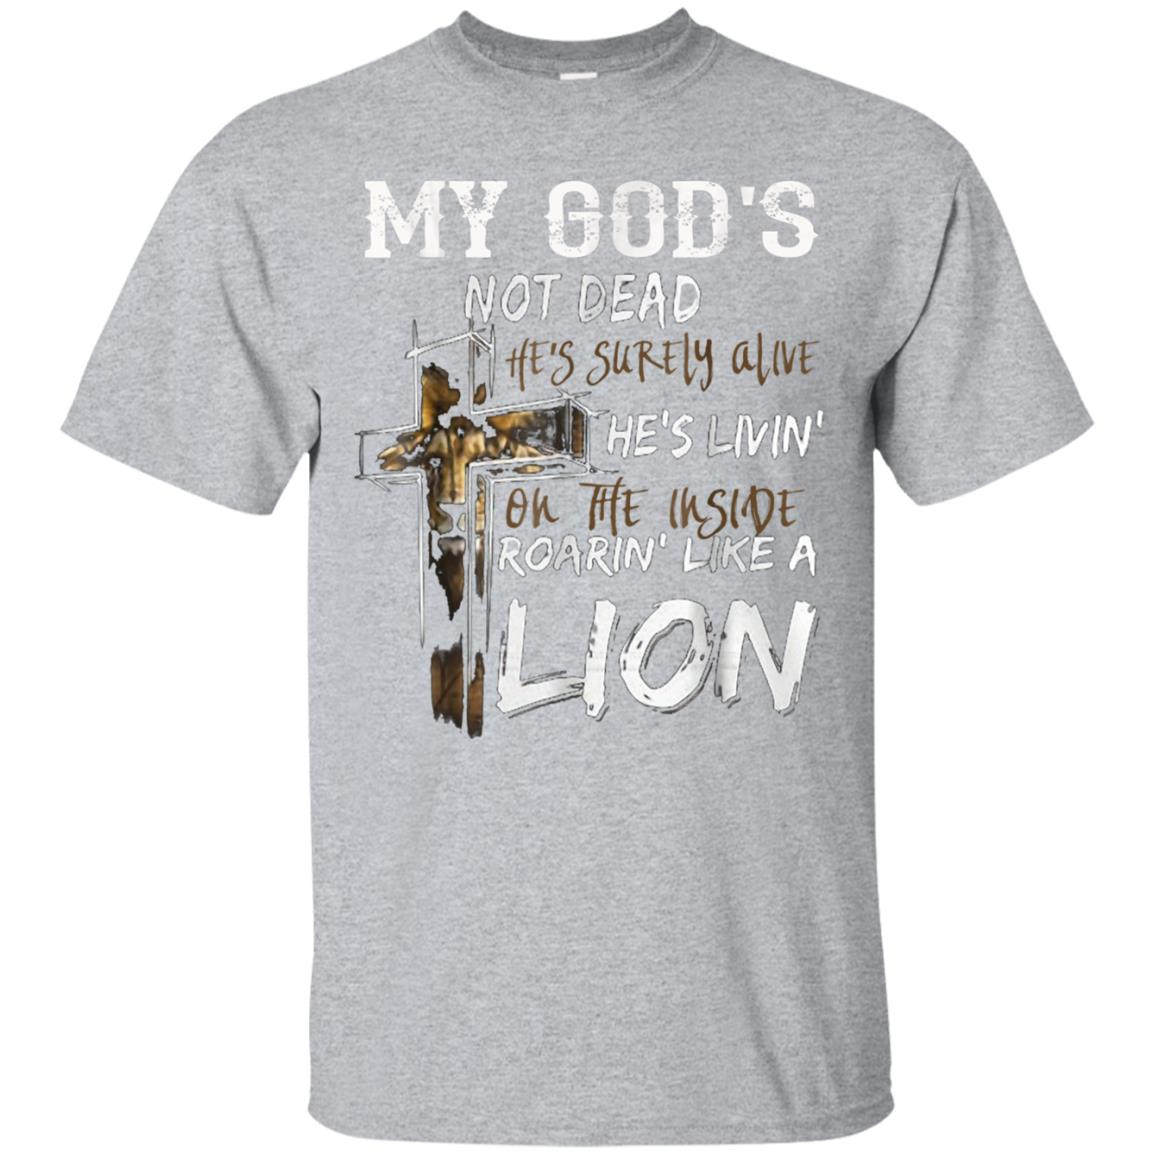 My god's not dead he's surely alive he's living Tshirt 99promocode